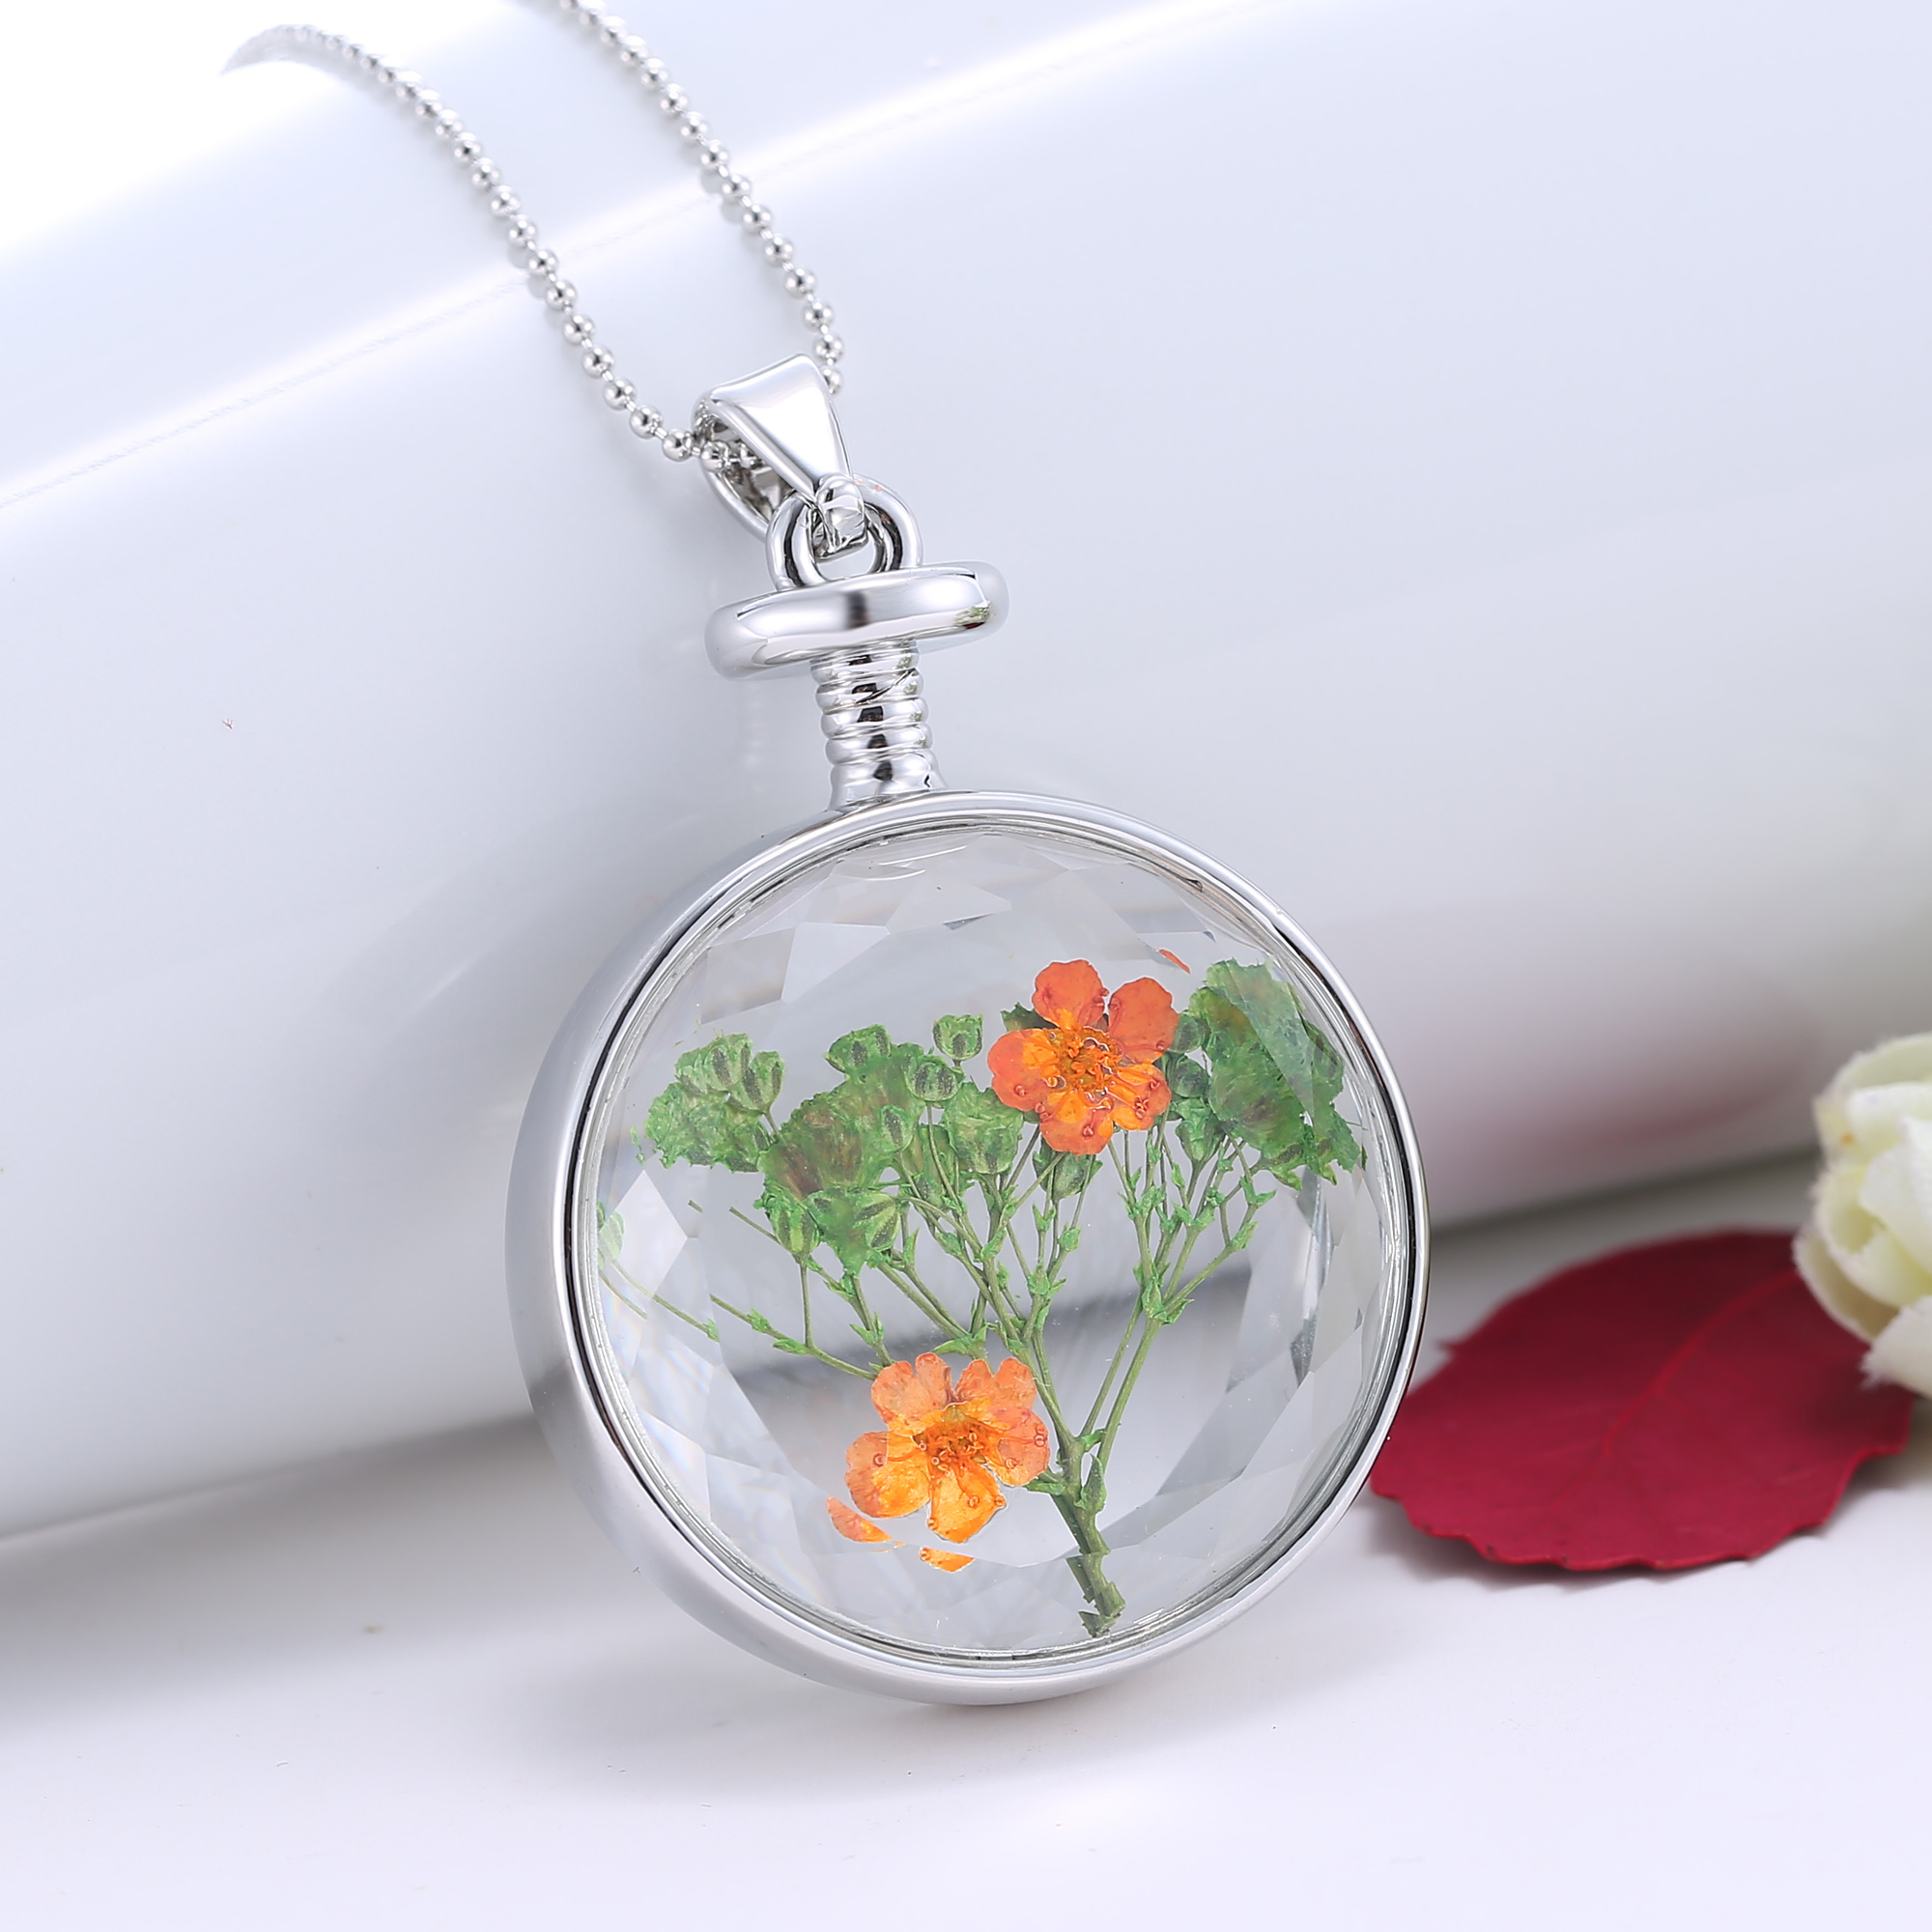 New Design Round Glass Locket Pendant Necklace with Dried Flower inside